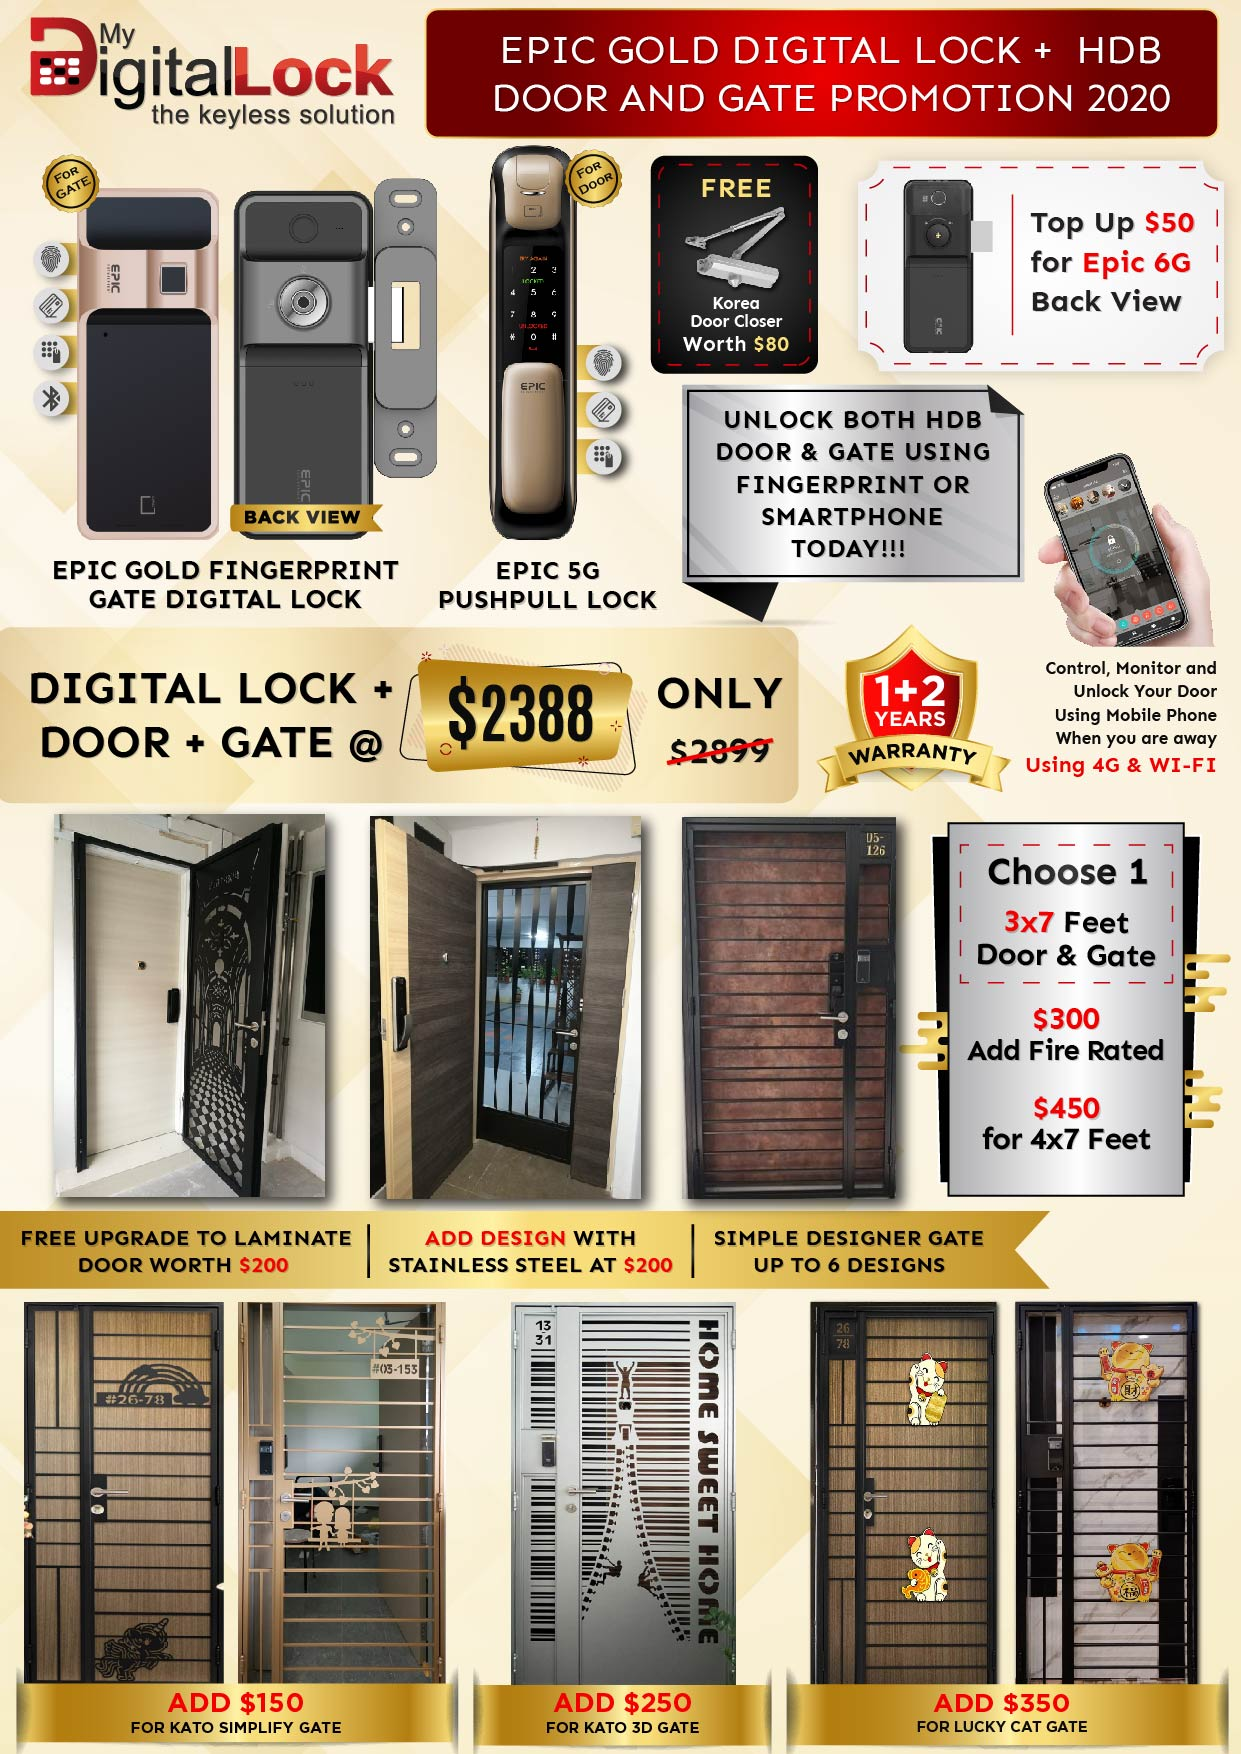 Golden-Rat-Year-HDB-Door-and-Gate-Promotion-with-EPIC-Gold-Fingerprint-and-5G-PushPull